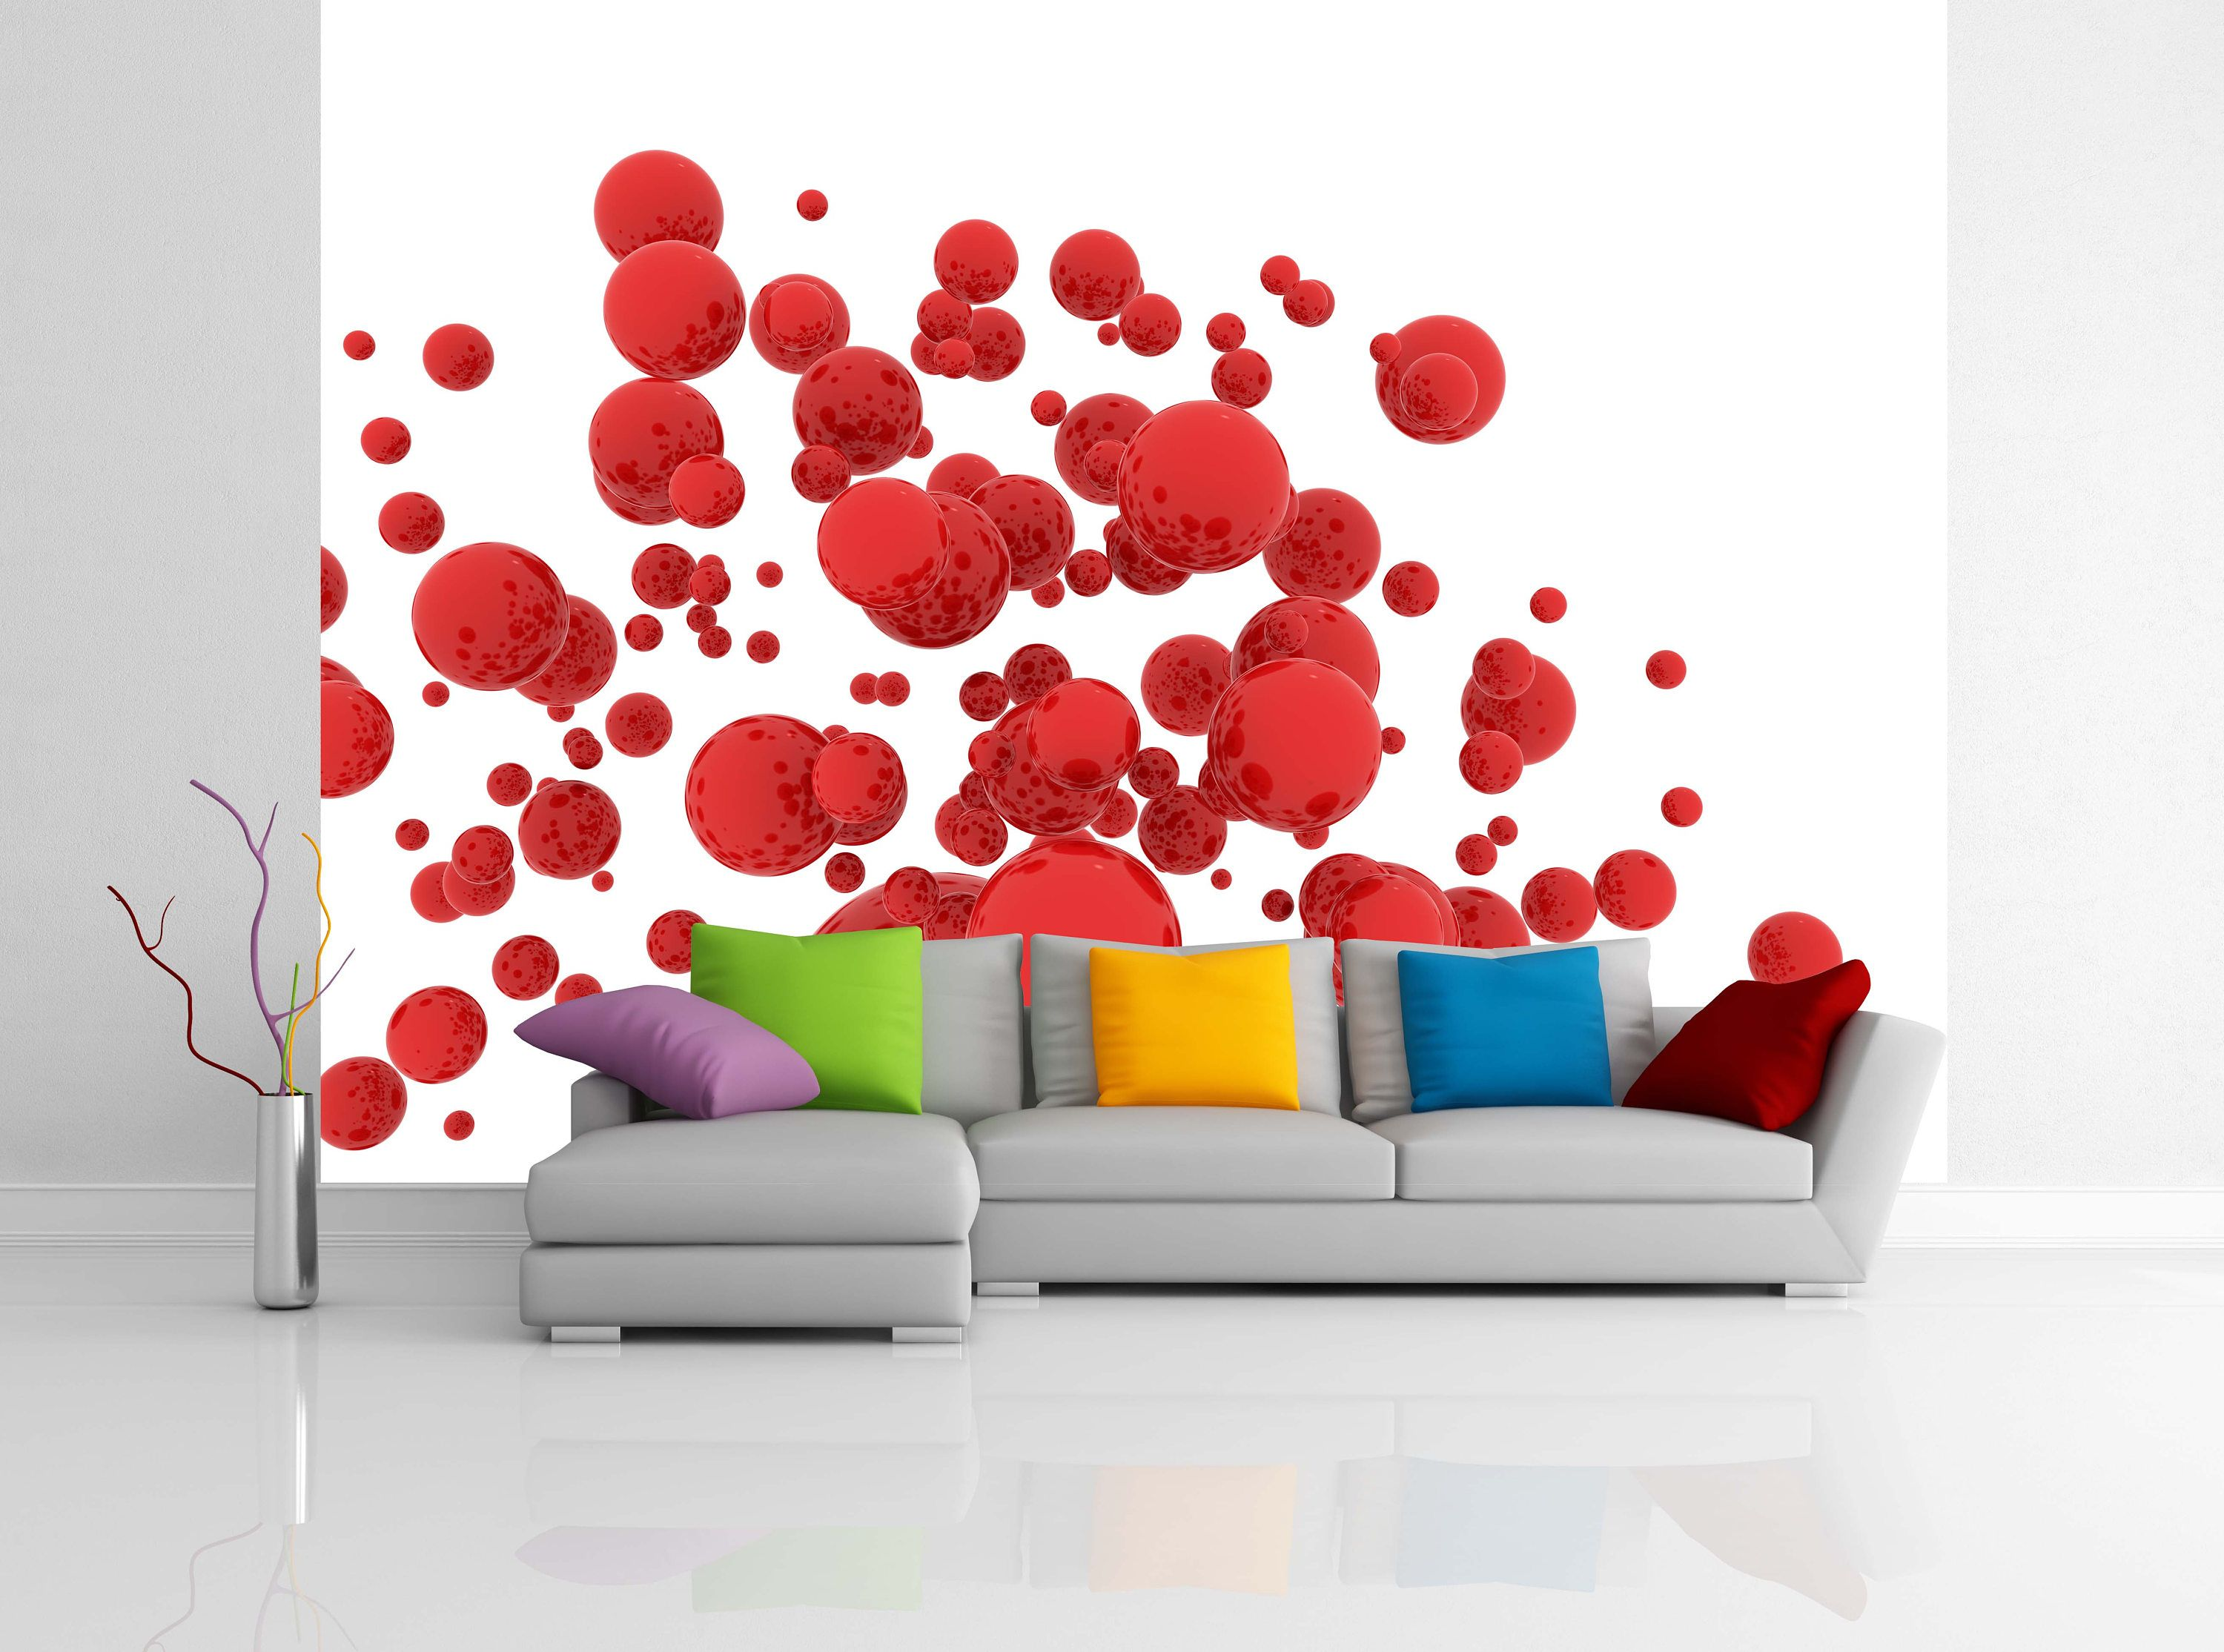 Removable Wallpaper Mural Peel Stick 3d Falling Red Spheres On A White Background By Uniqstiq On Etsy Removable Wallpaper Mural Wallpaper Mural